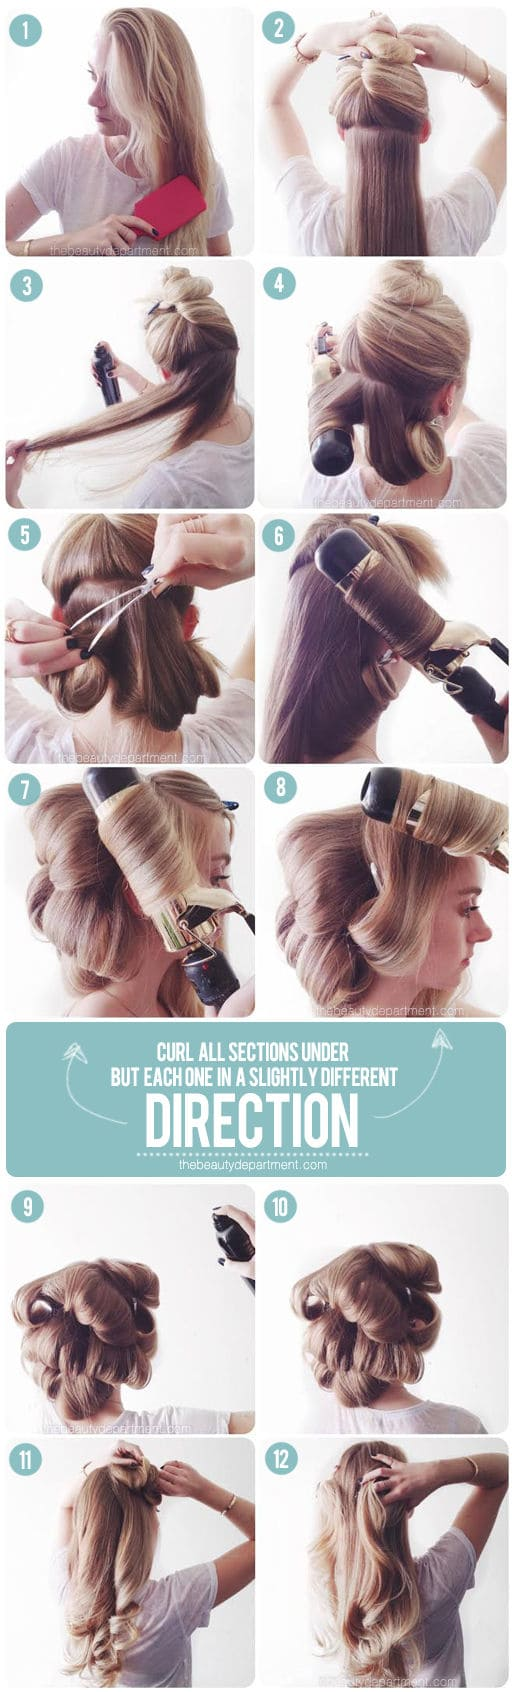 13 Easy and Surprisingly Useful Hairstyle Tips That Will Keep Your Hair Shiny